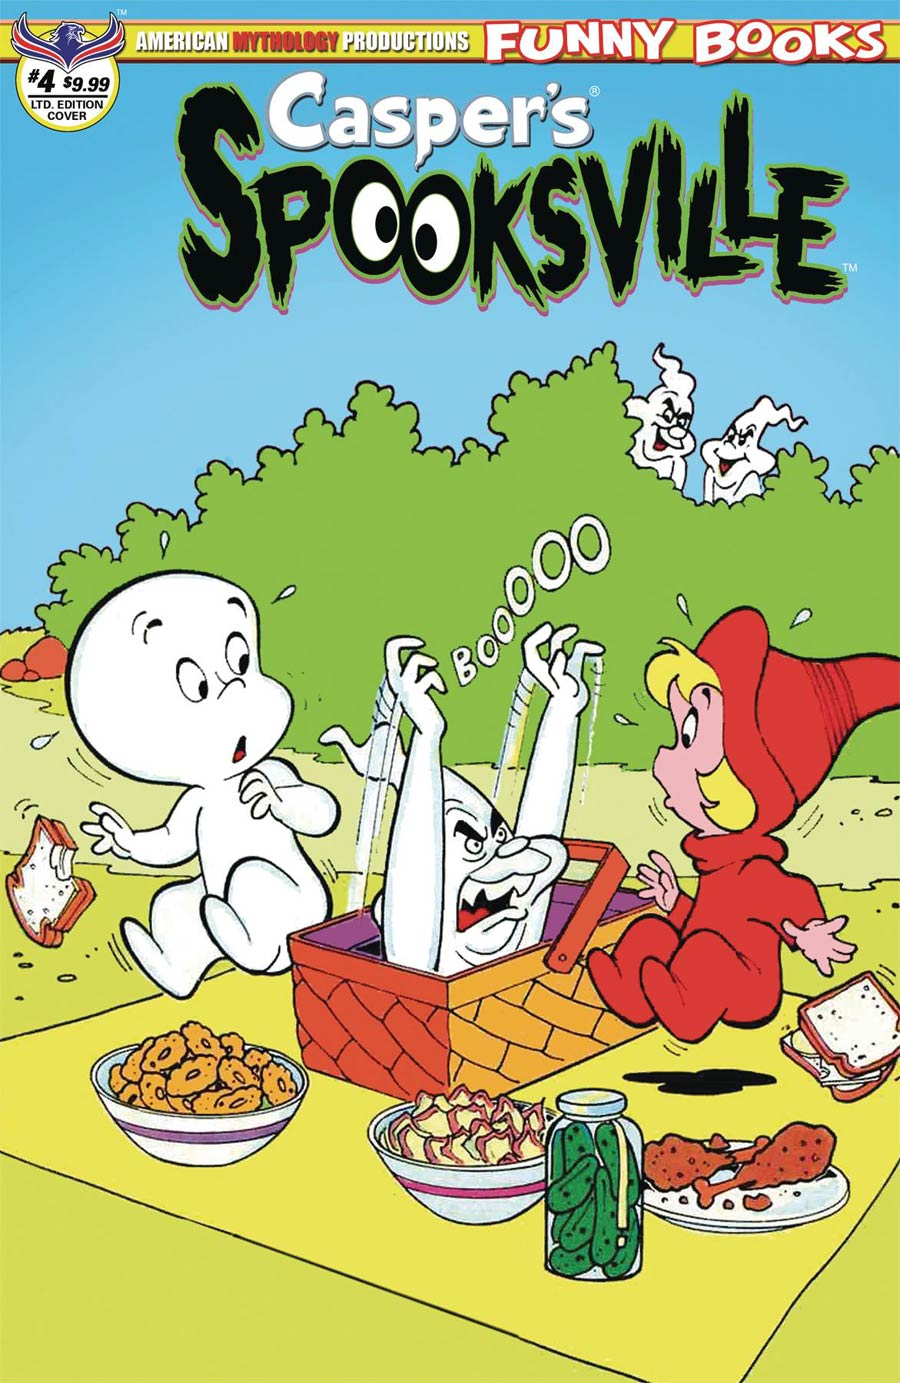 Caspers Spooksville #4 Cover B Limited Edition Retro Animation Variant Cover